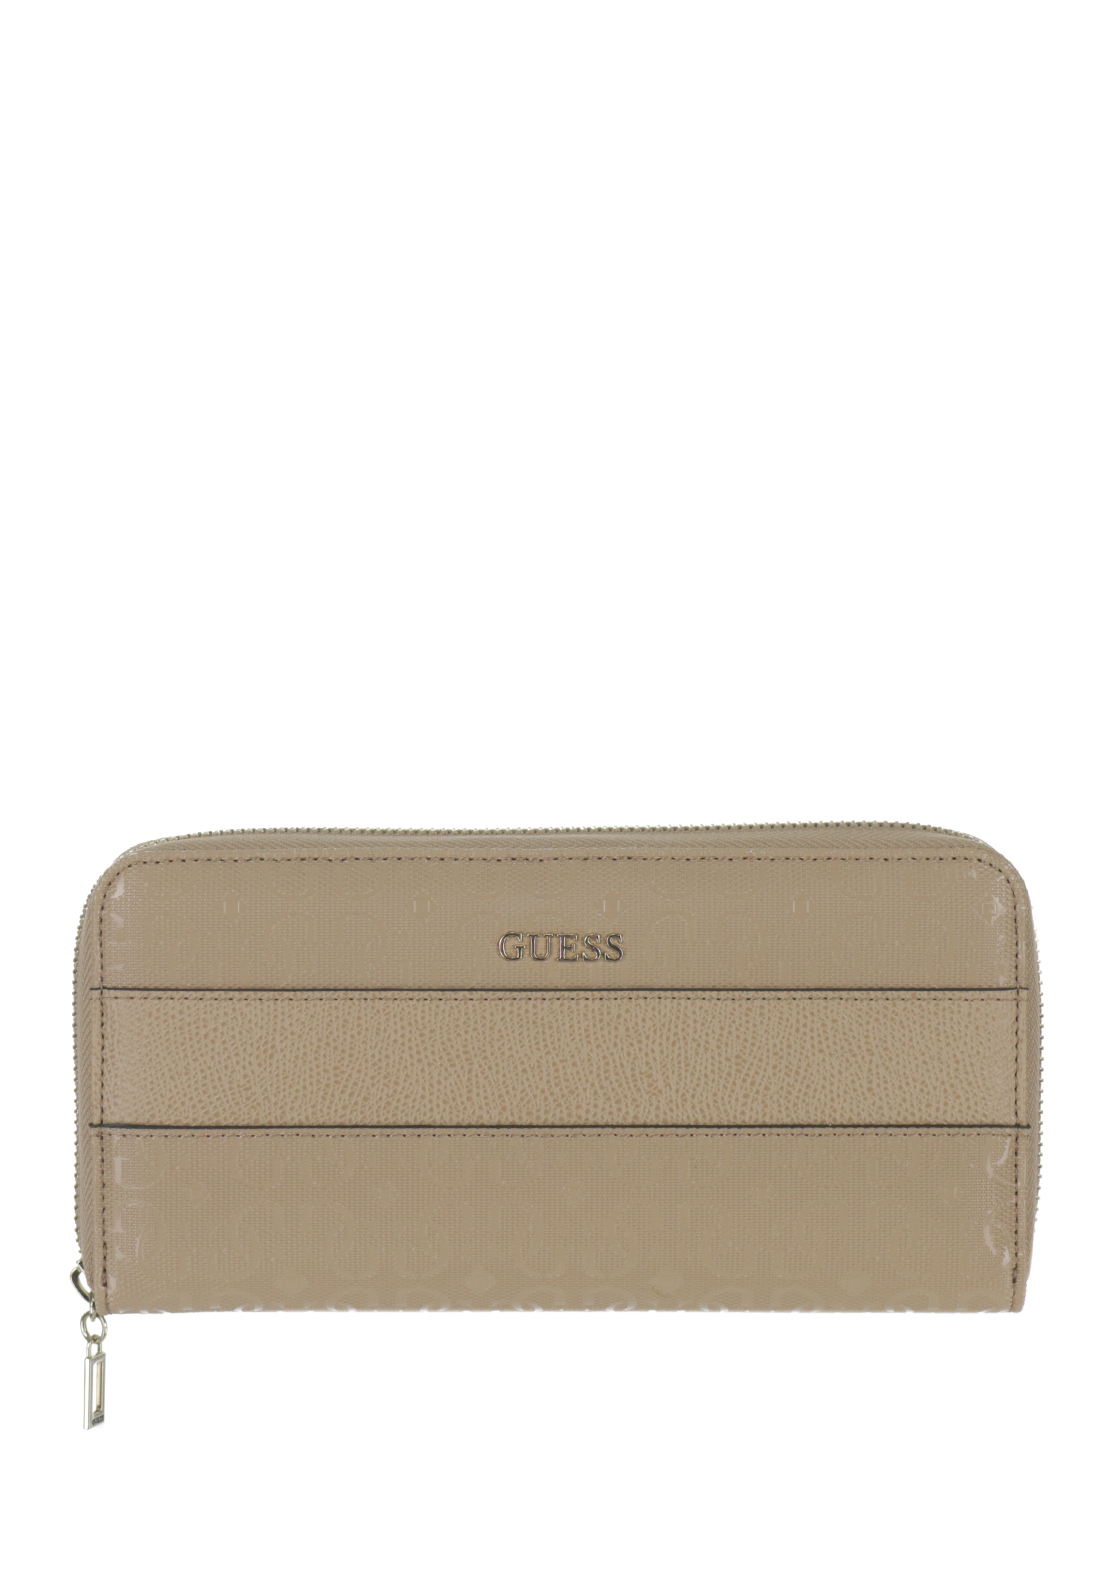 Guess Janette Zip around Large Wristlet Purse, Tan